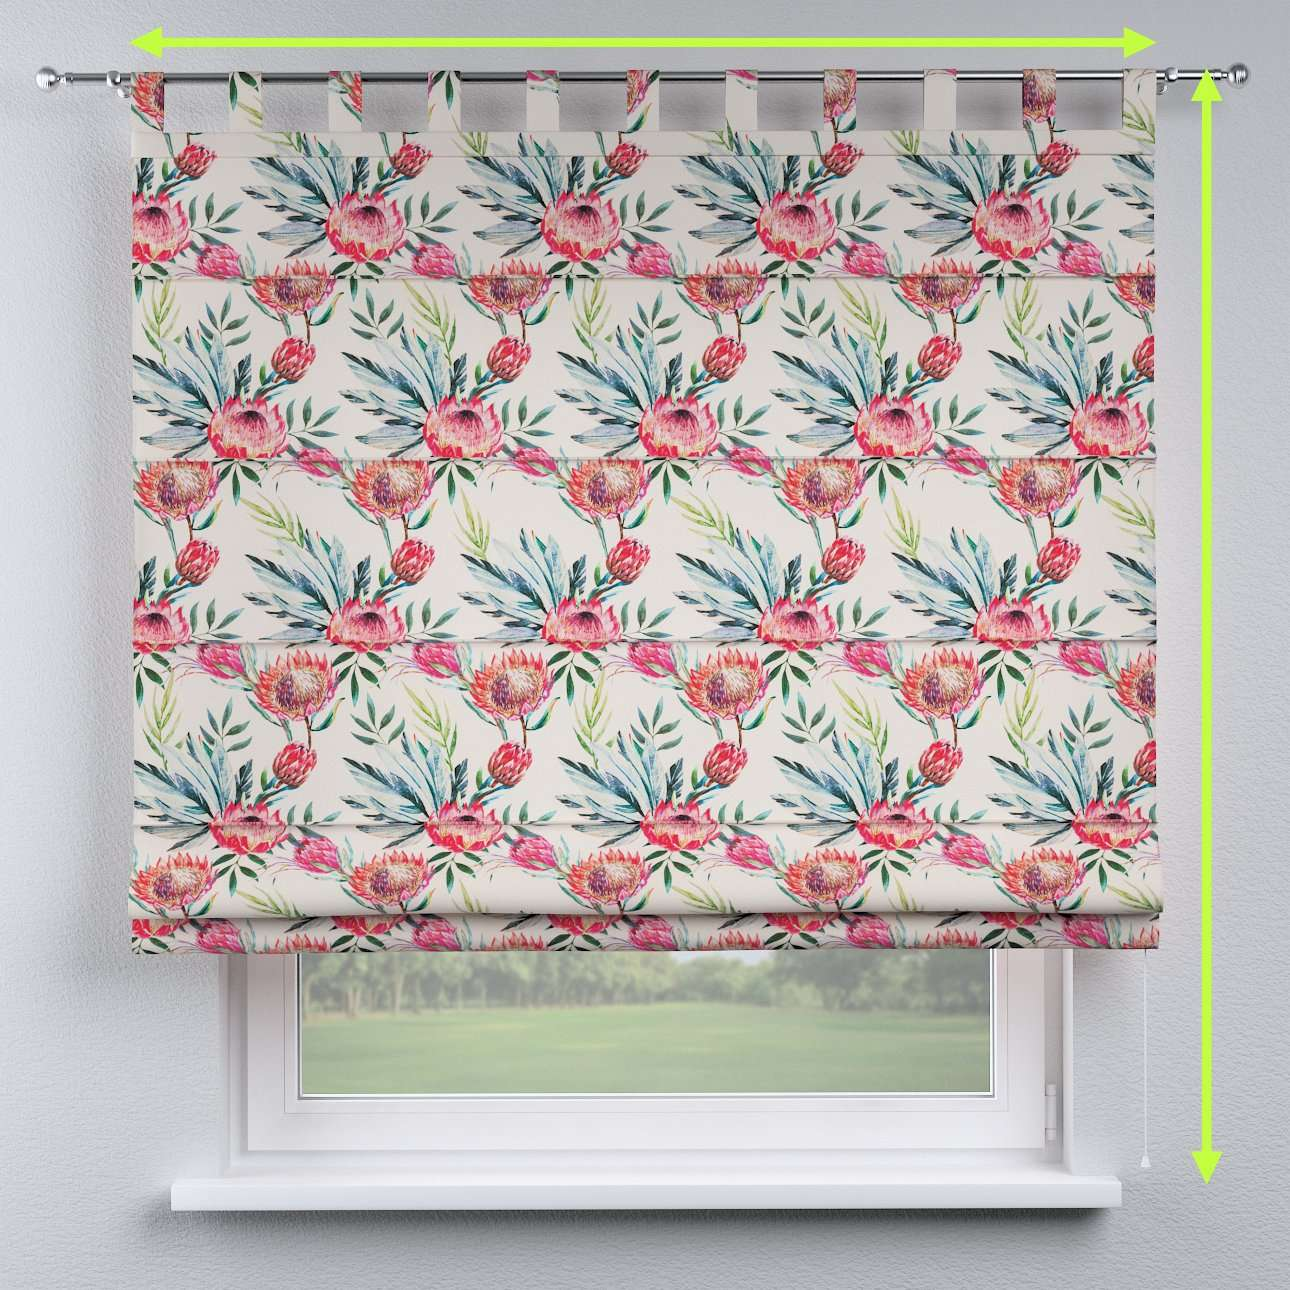 Verona tab top roman blind in collection New Art, fabric: 141-59